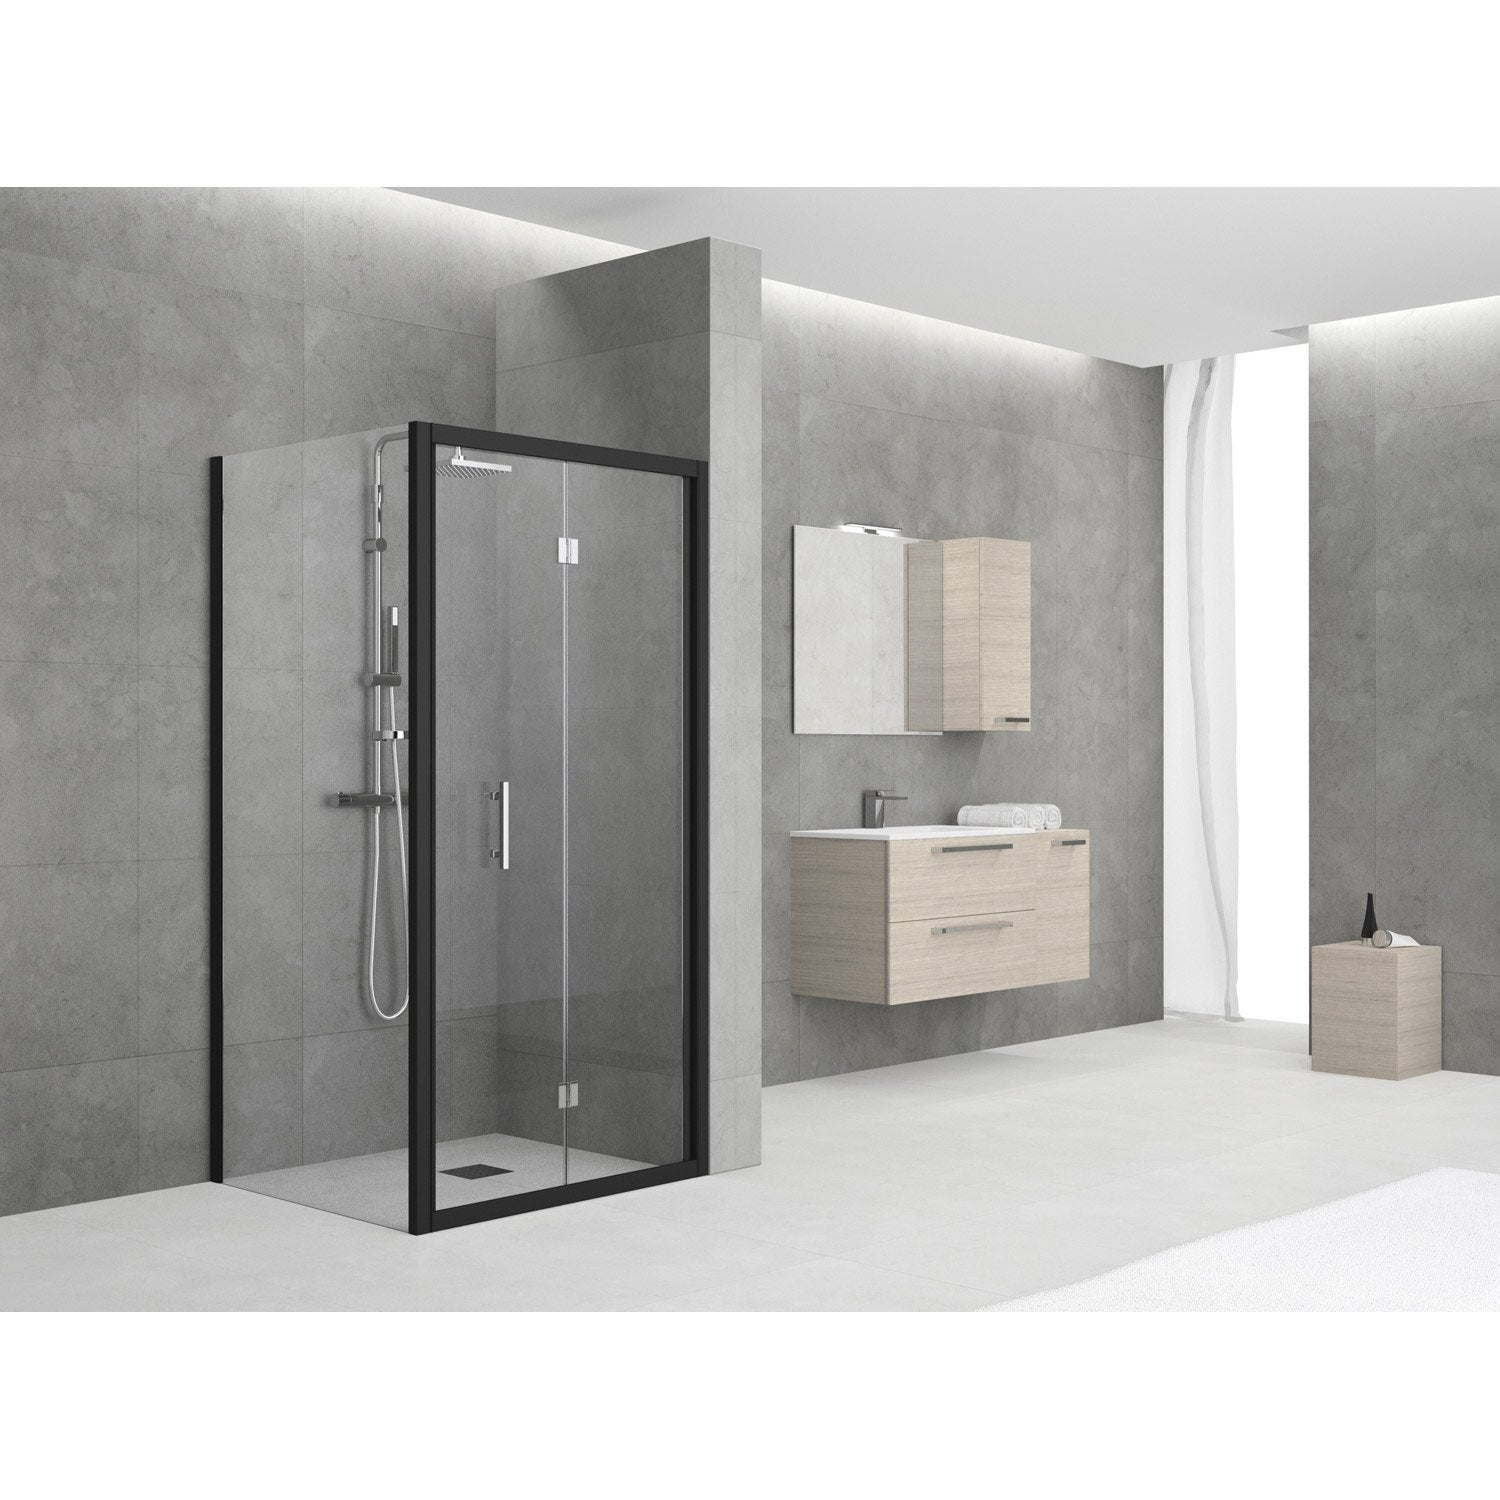 porte de douche pliante 96 102 cm profil noir elyt. Black Bedroom Furniture Sets. Home Design Ideas